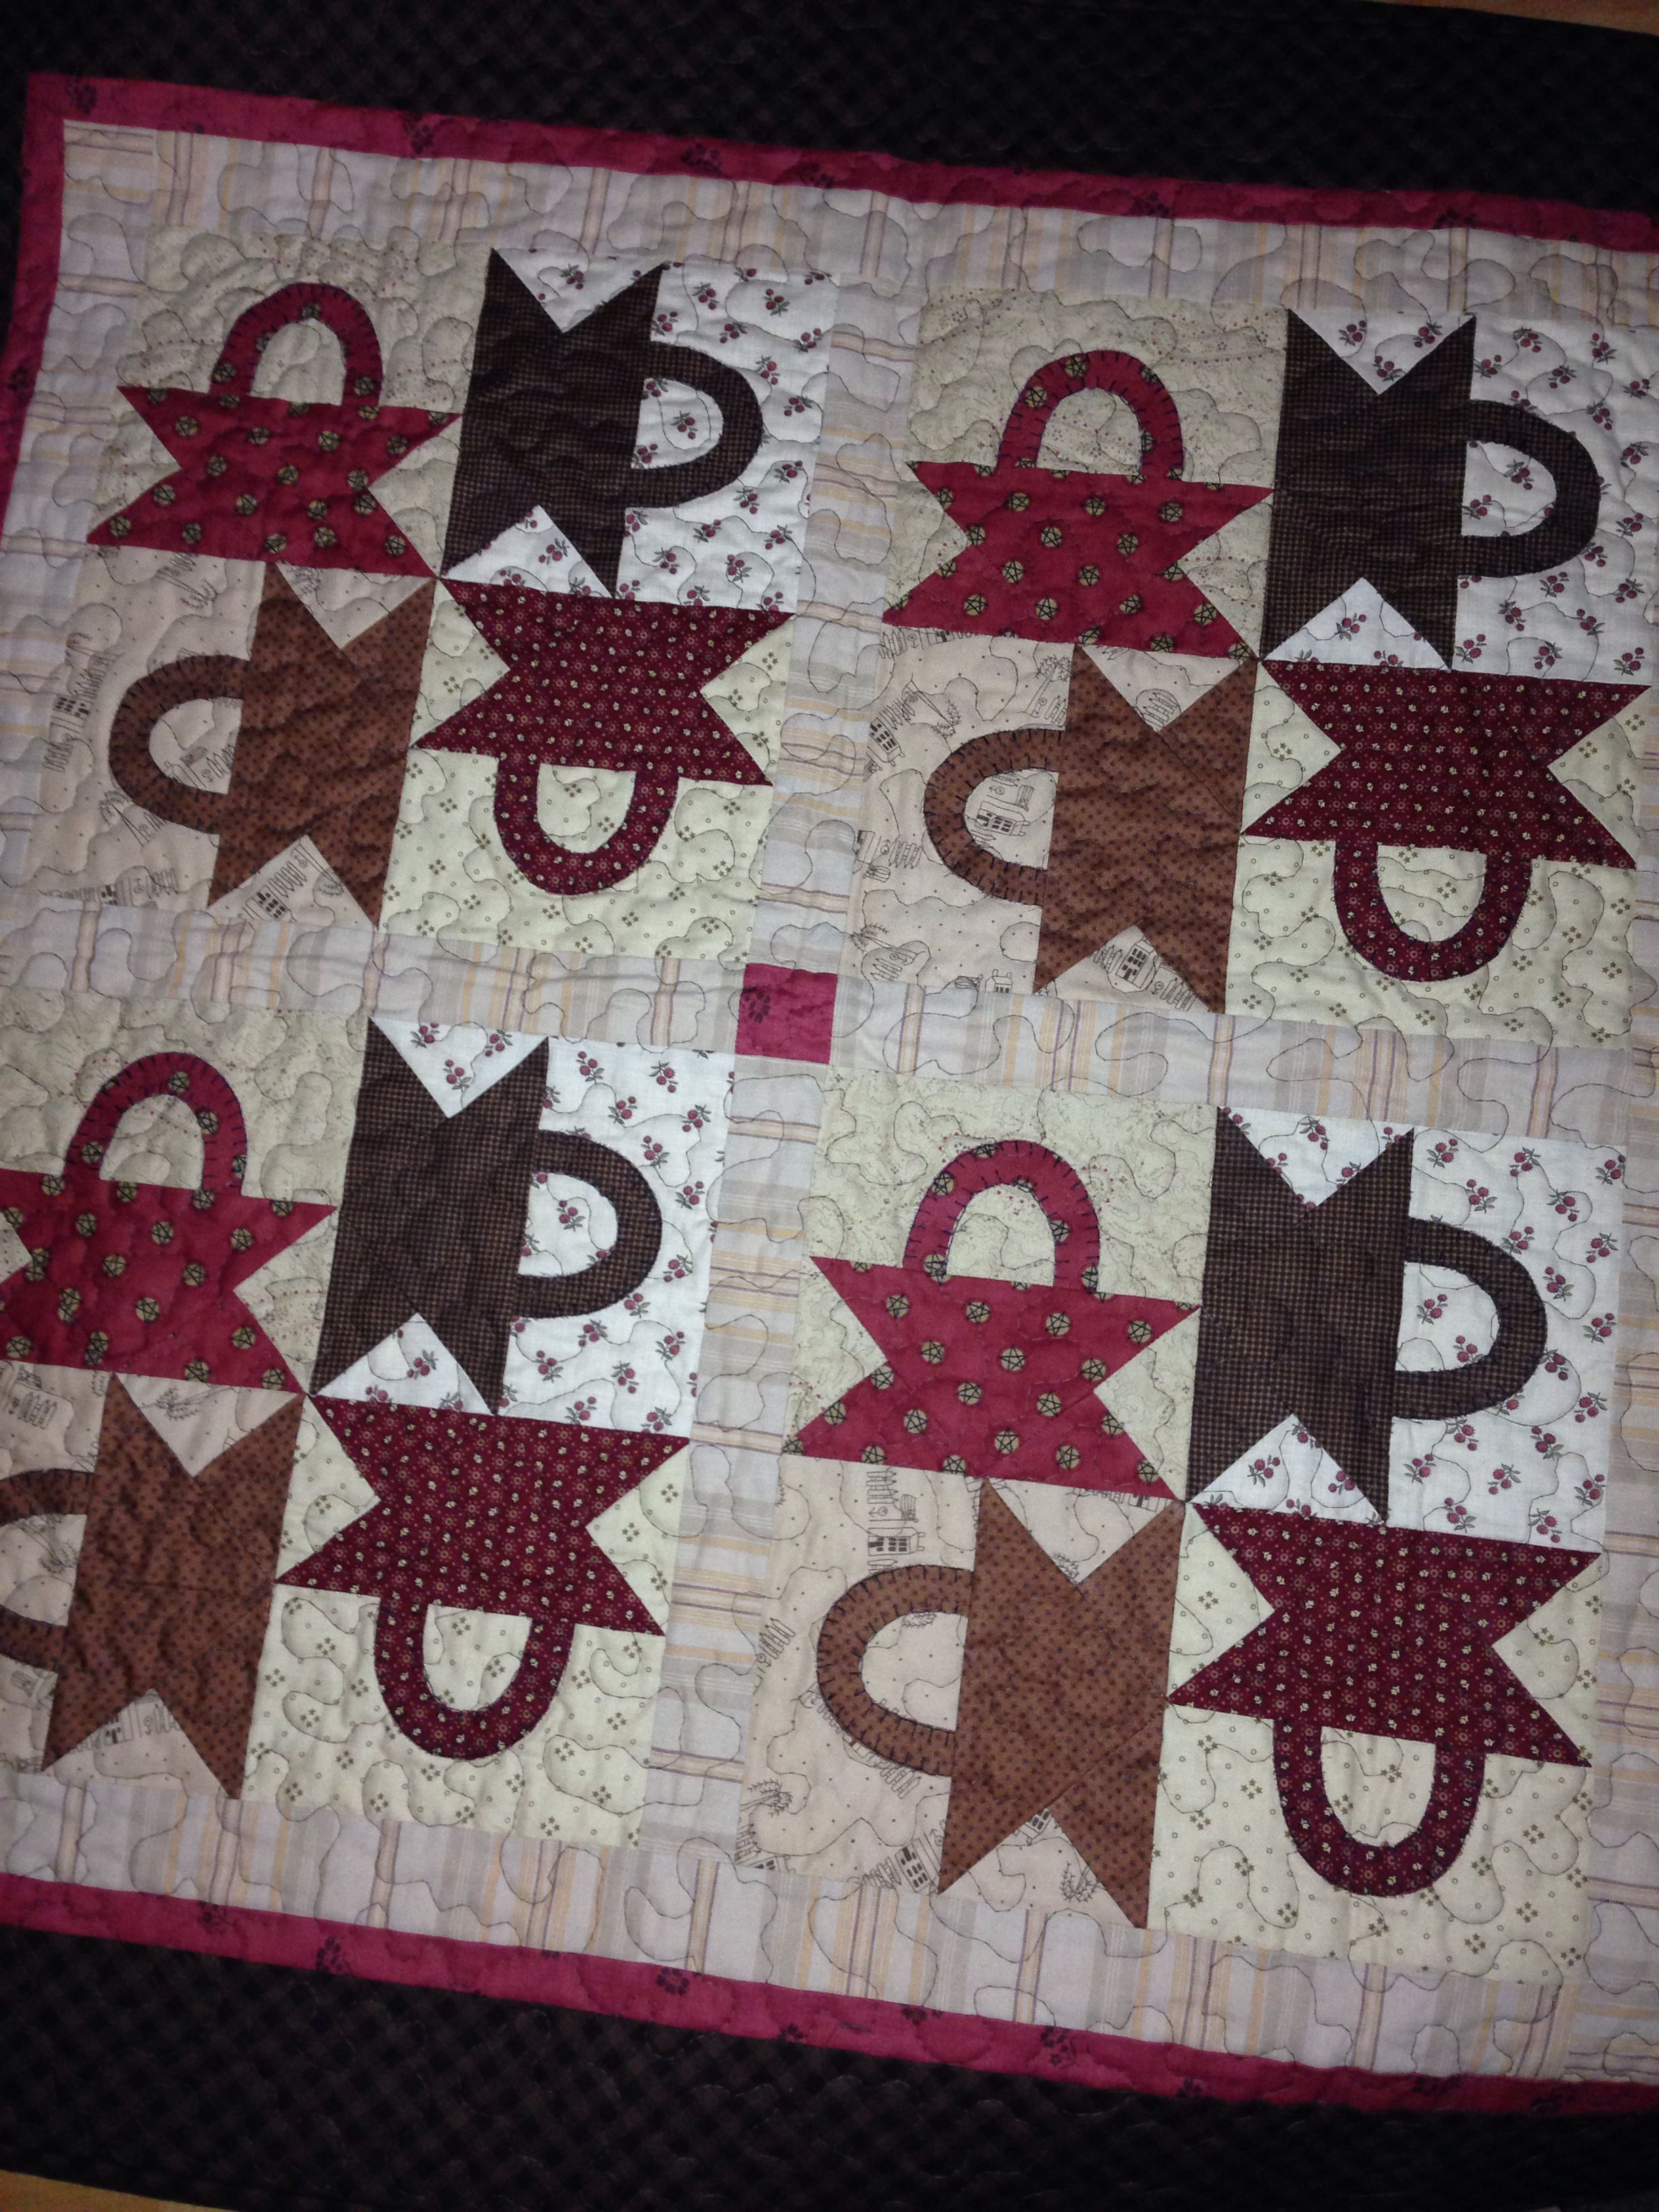 This Basket Quilt Was A Mystery Quilt Done With The Guild At A Potluck So Much Fun Mary Ann Caba Quilts Small Quilts Basket Quilt